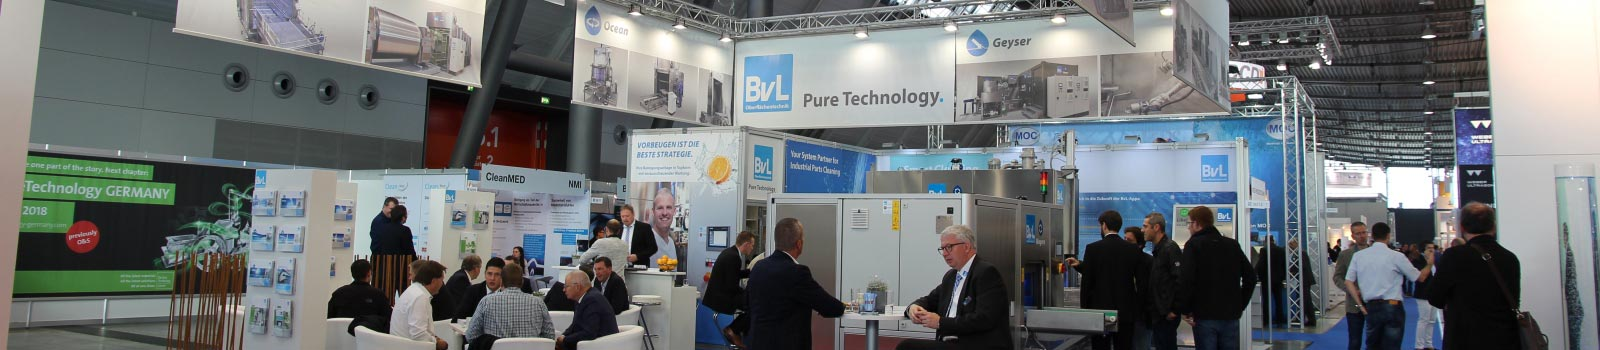 BvL-Messestand Parts2Clean 2017 in Stuttgart